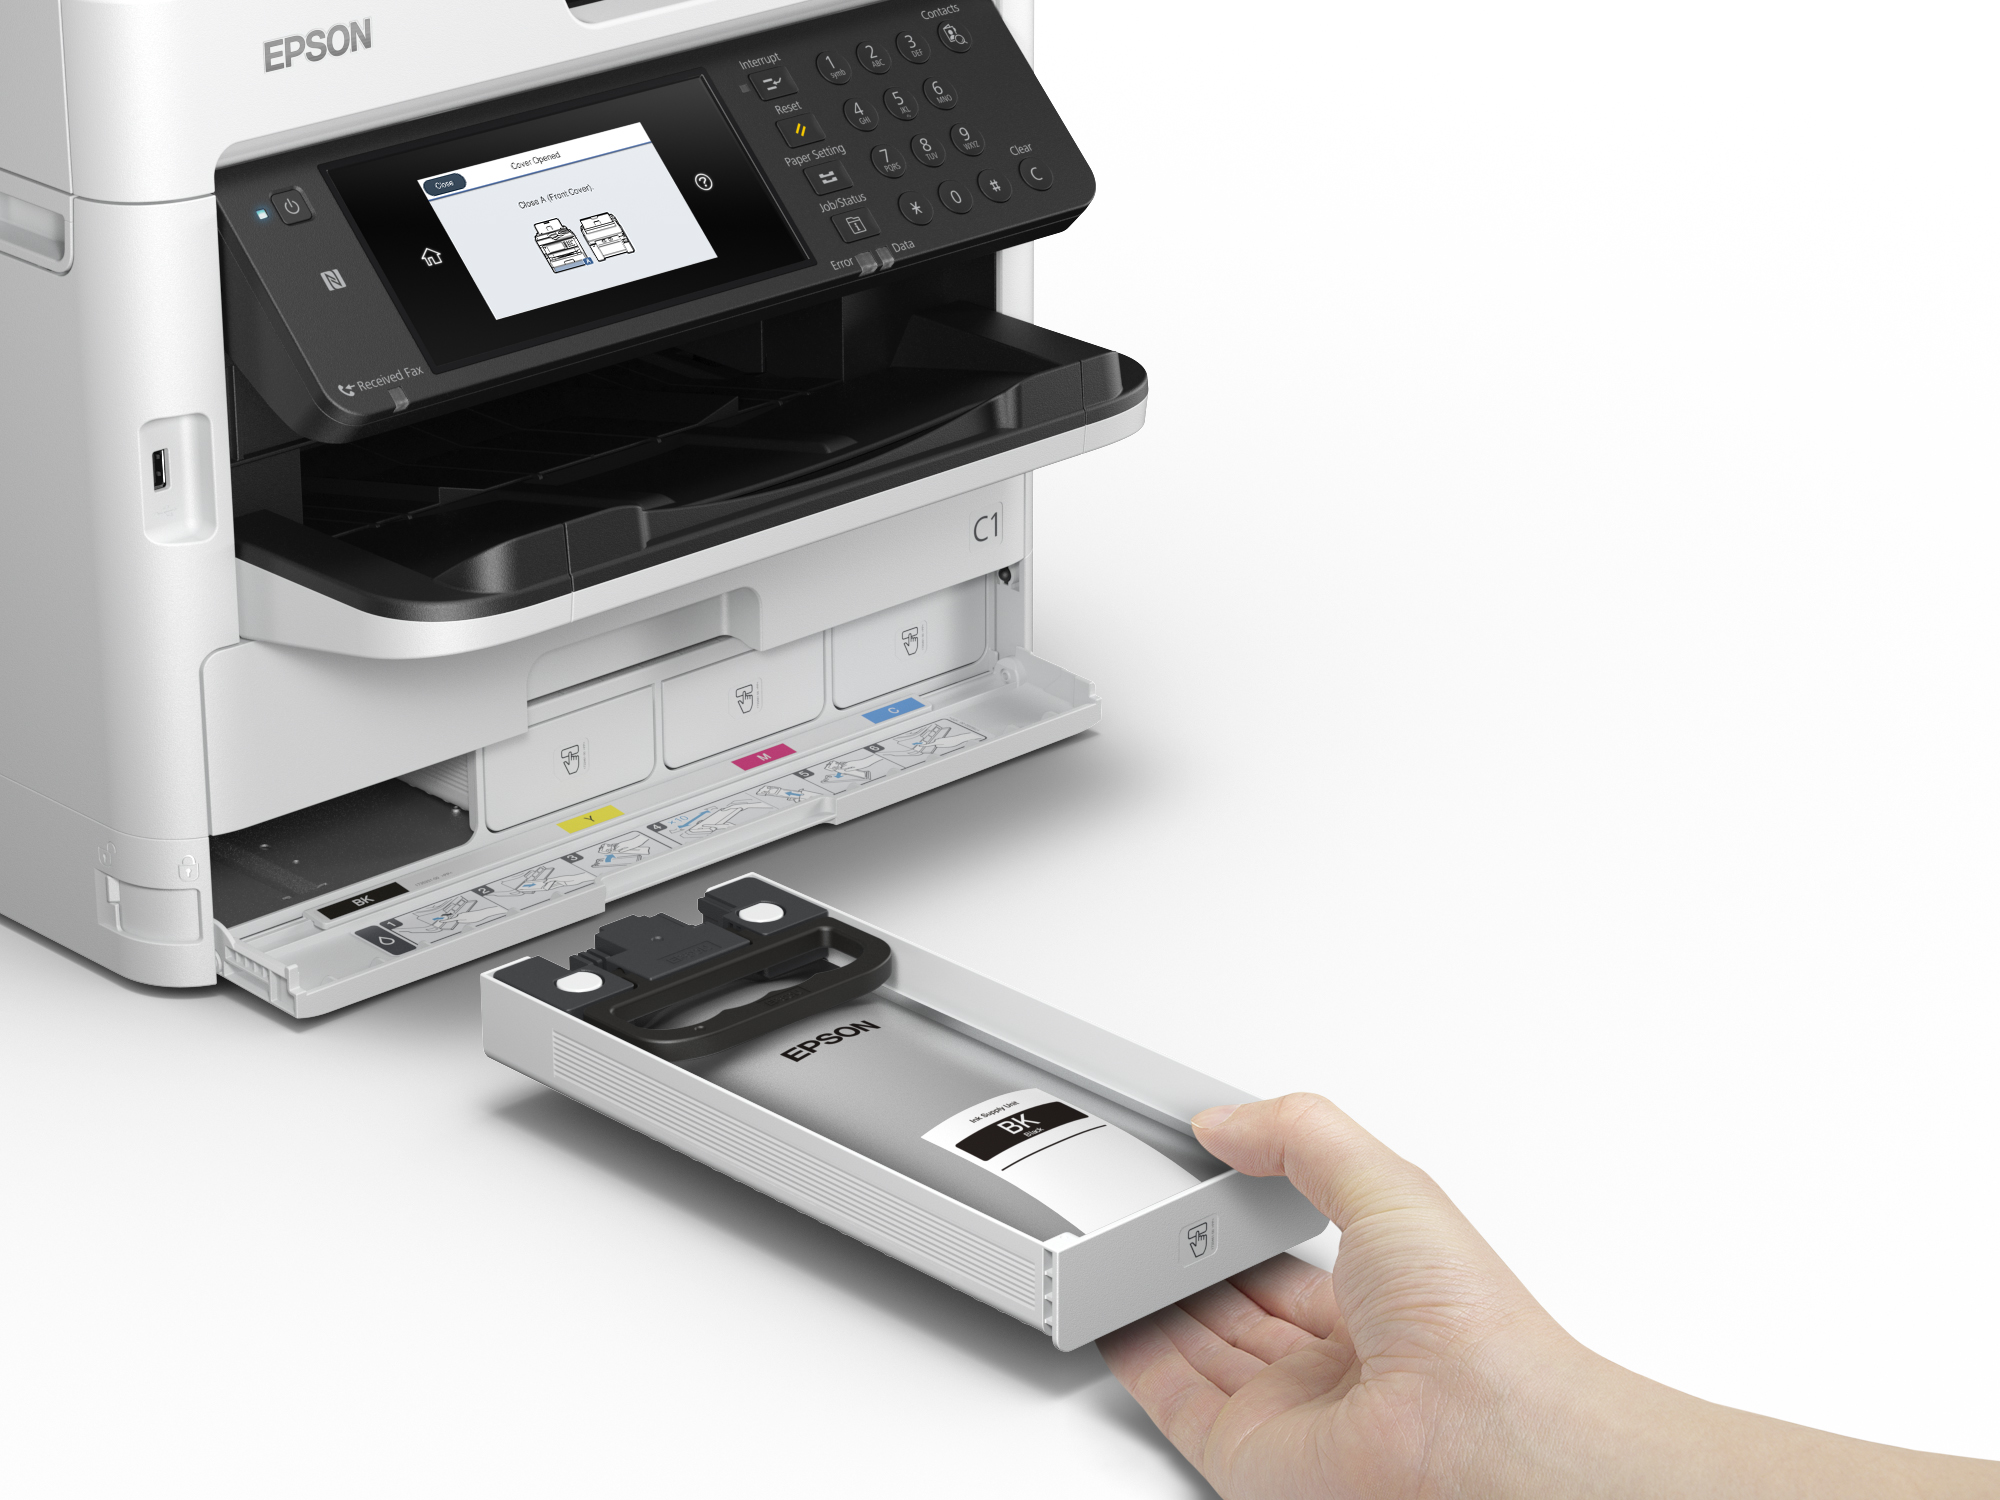 Epson adds RIPS to WorkForce Pro WF-C5000 series – The Recycler